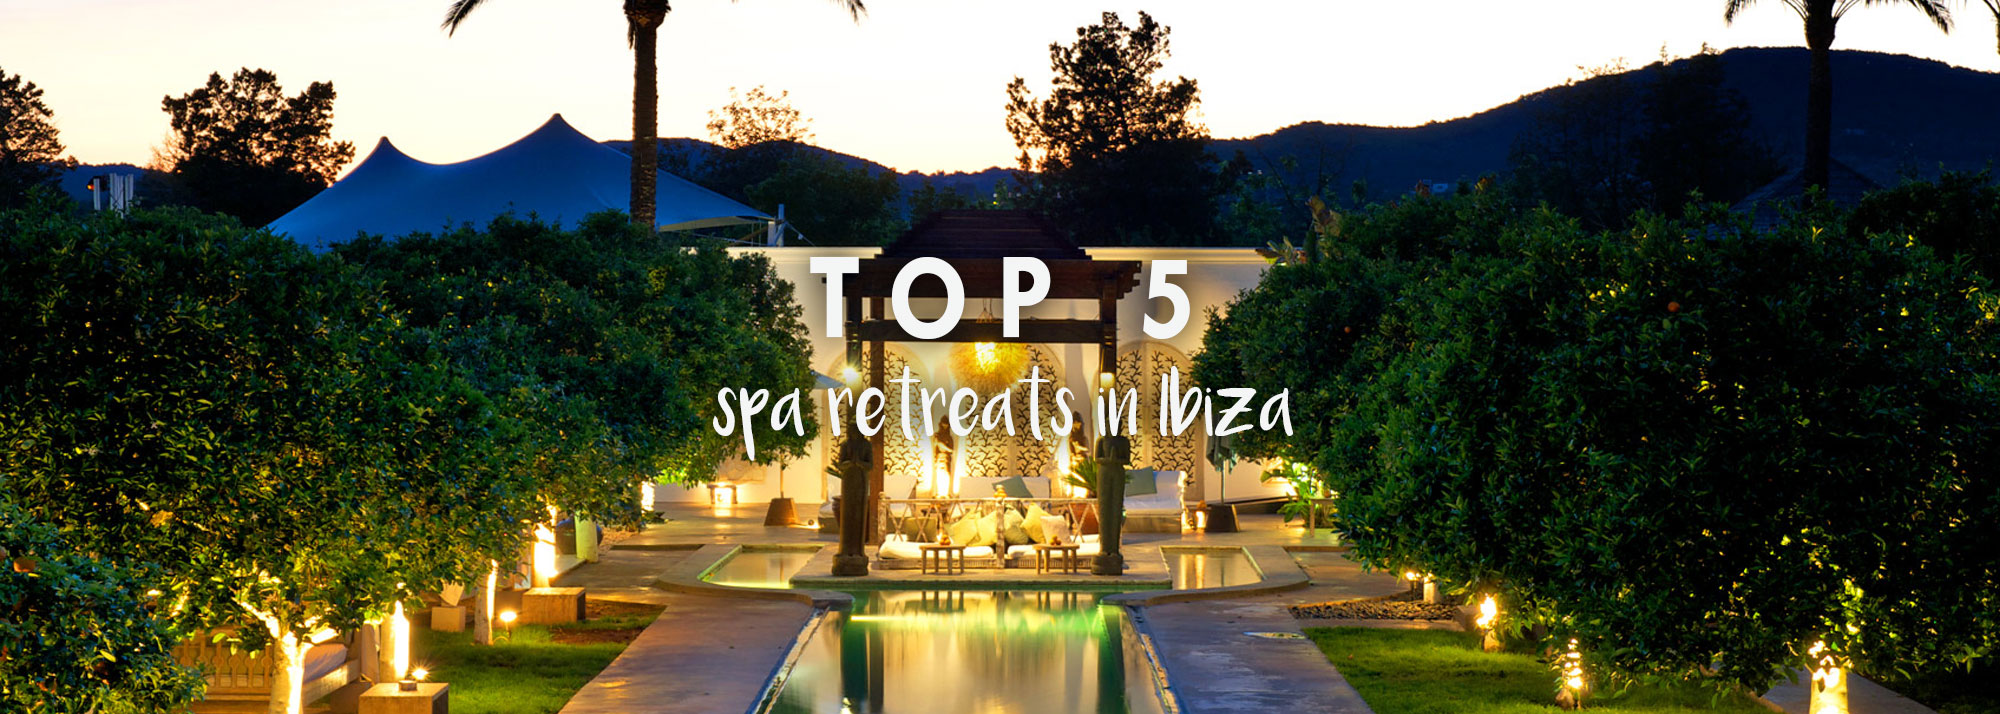 Top 5 Spa Retreats Ibiza